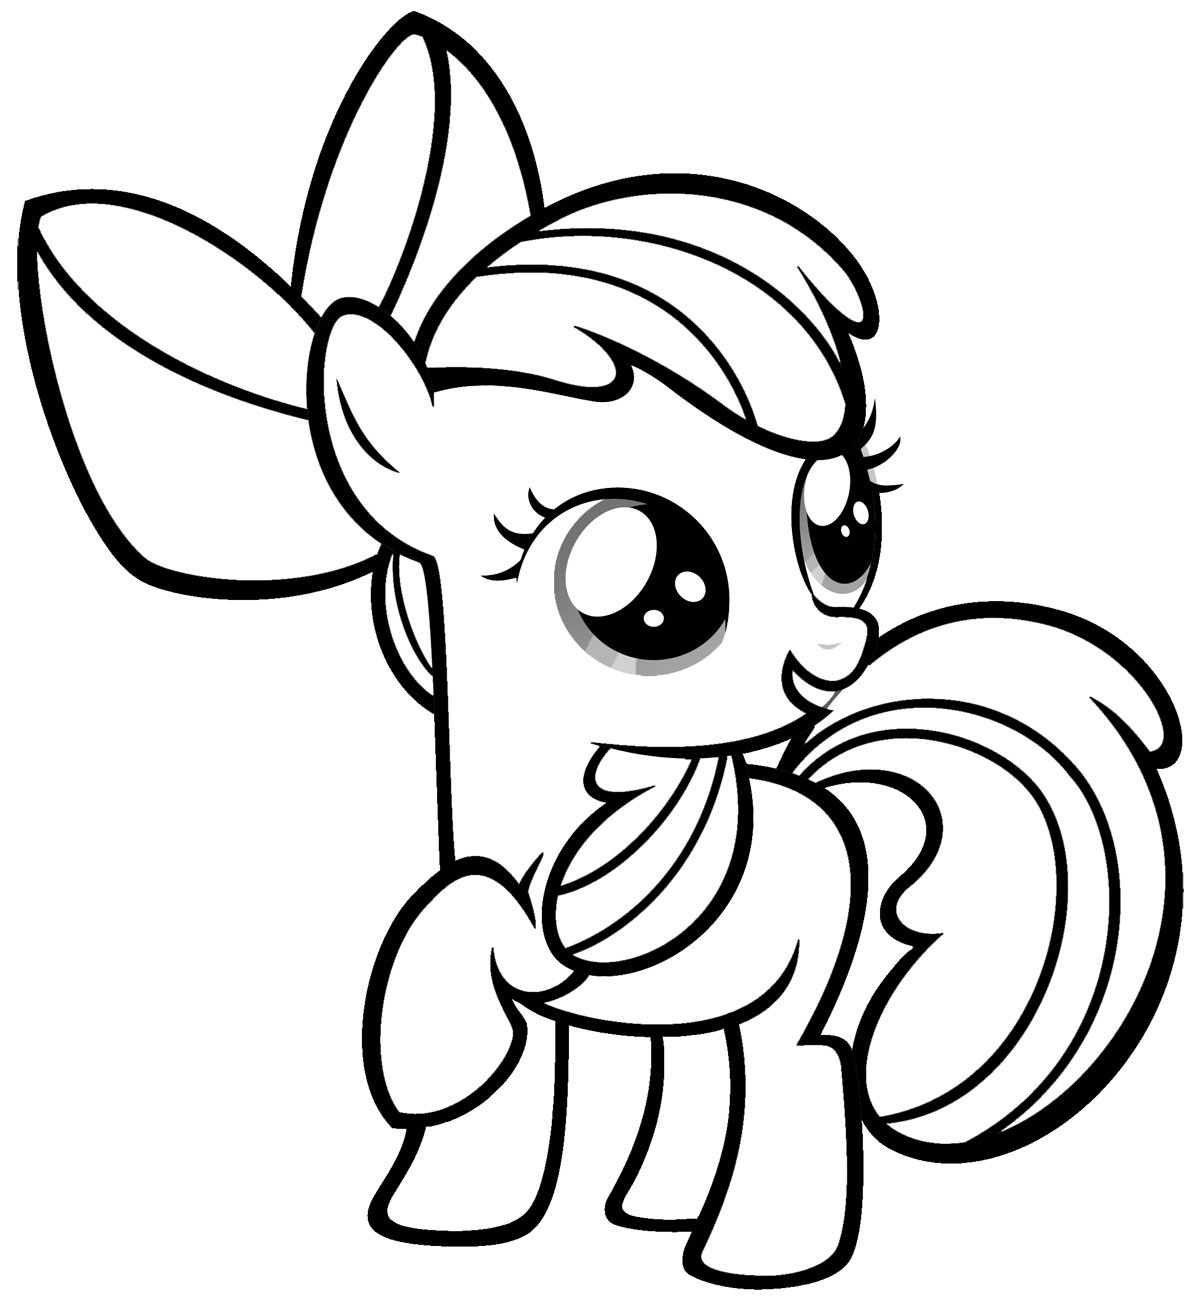 Princesse Dans Sa Robe De Mariee likewise Ausmalbilder Einhorn further Equestria Monsters University Girls 383466894 likewise My Little Pony Rarity additionally My Little Pony Sunset Shimmer Pony Coloring Pages. on queen twilight sparkle